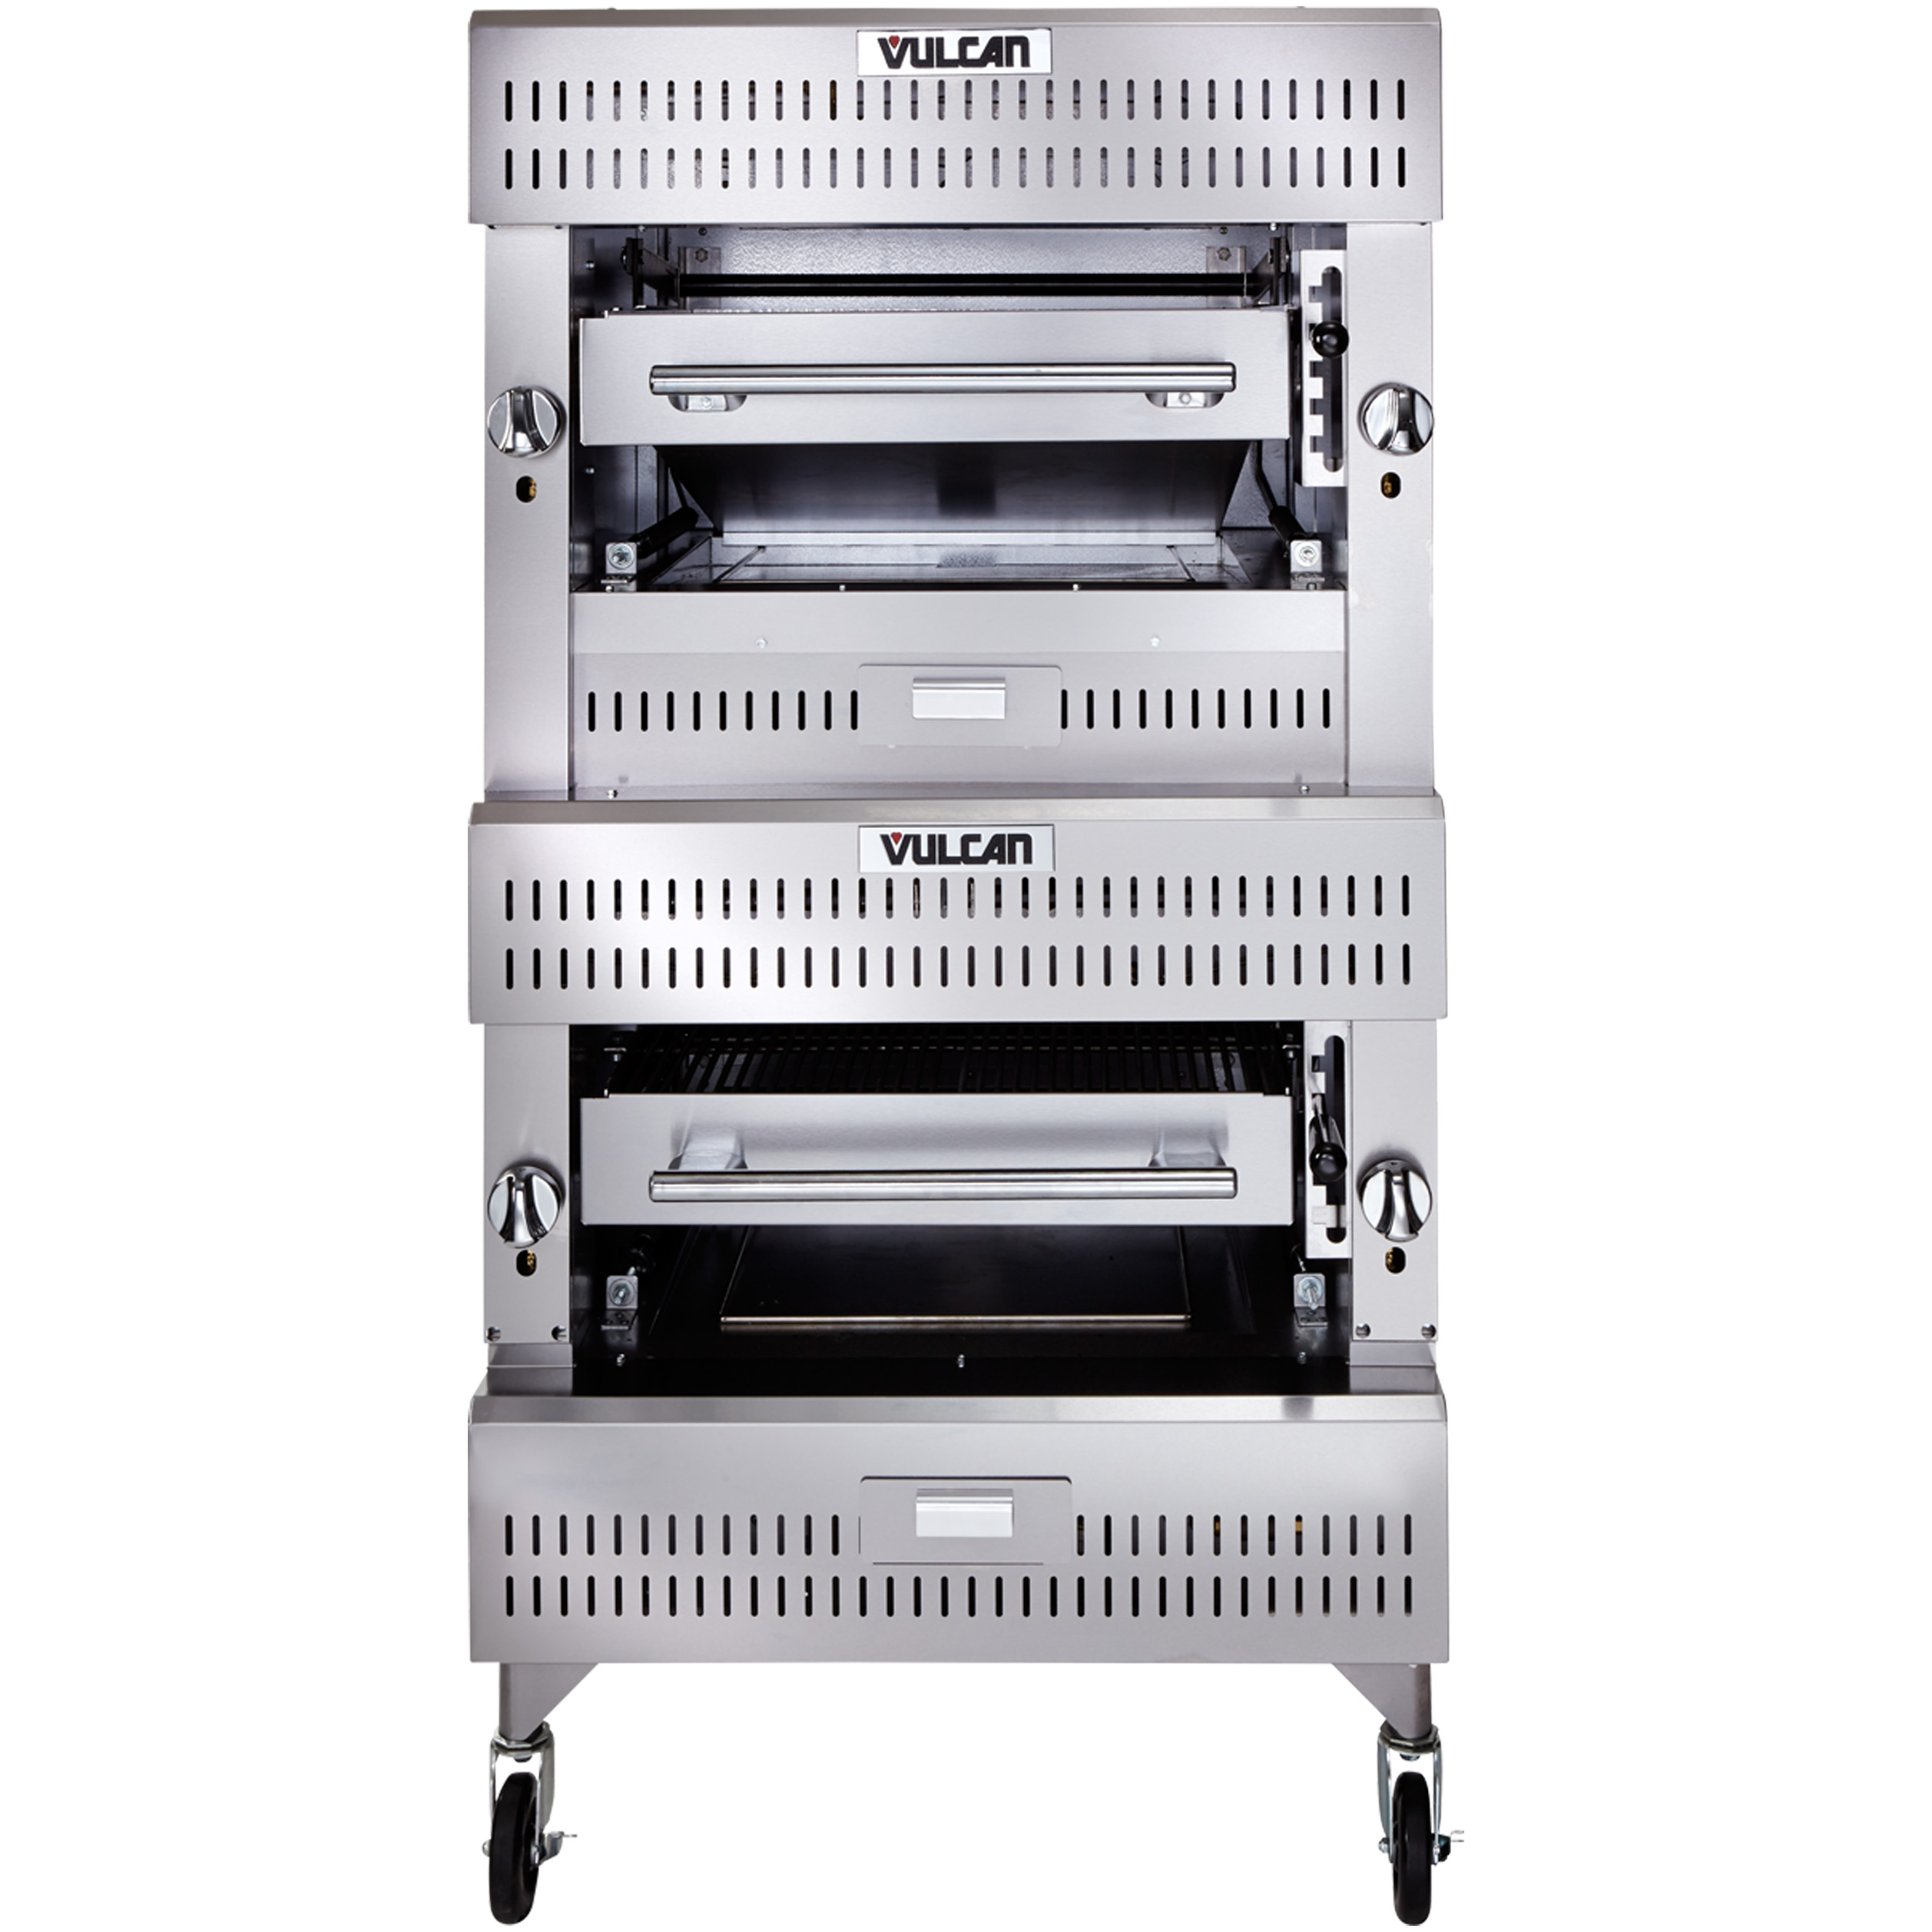 Vulcan VIB2 broiler, deck-type, gas